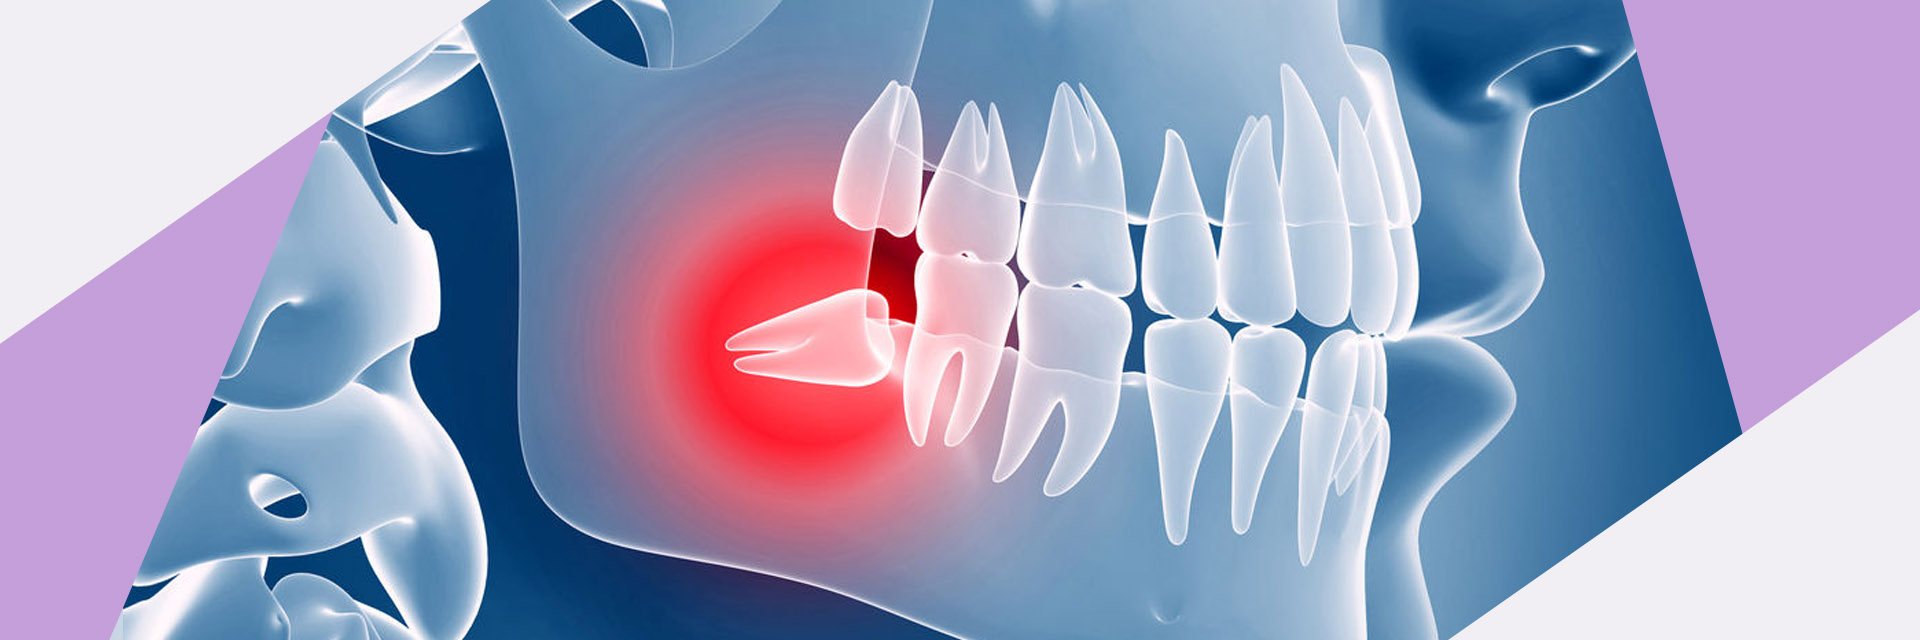 queensboro-dental-implants-flushing-ny-impacted-cuspid-Slider-05